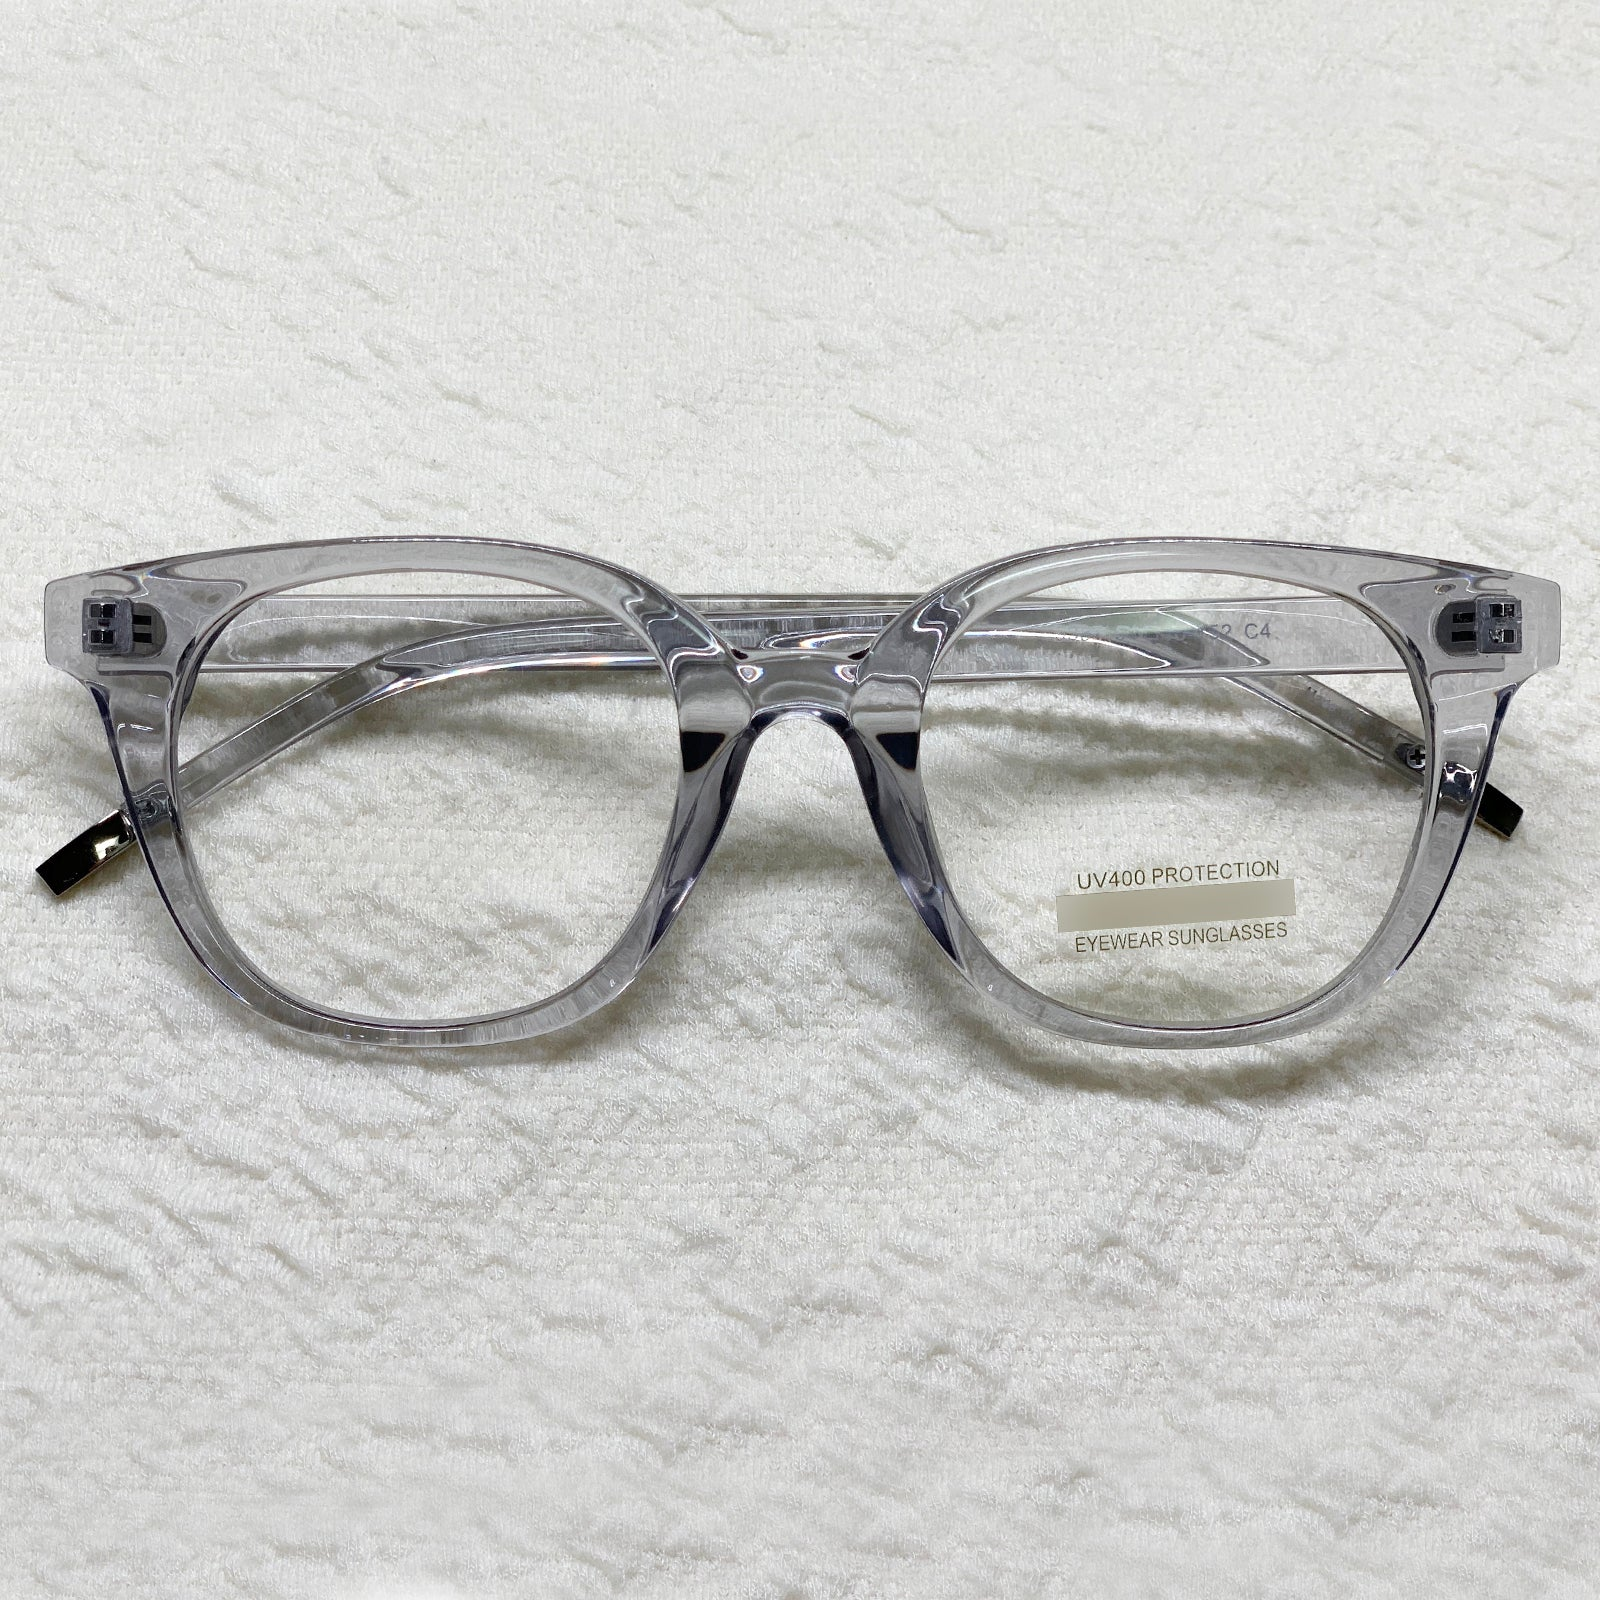 ENCACC Retro Nerd Geek Oversize Eye Glasses Horn Rim Framed Clear Lens Spectacles Gray 53871 - ENCACC